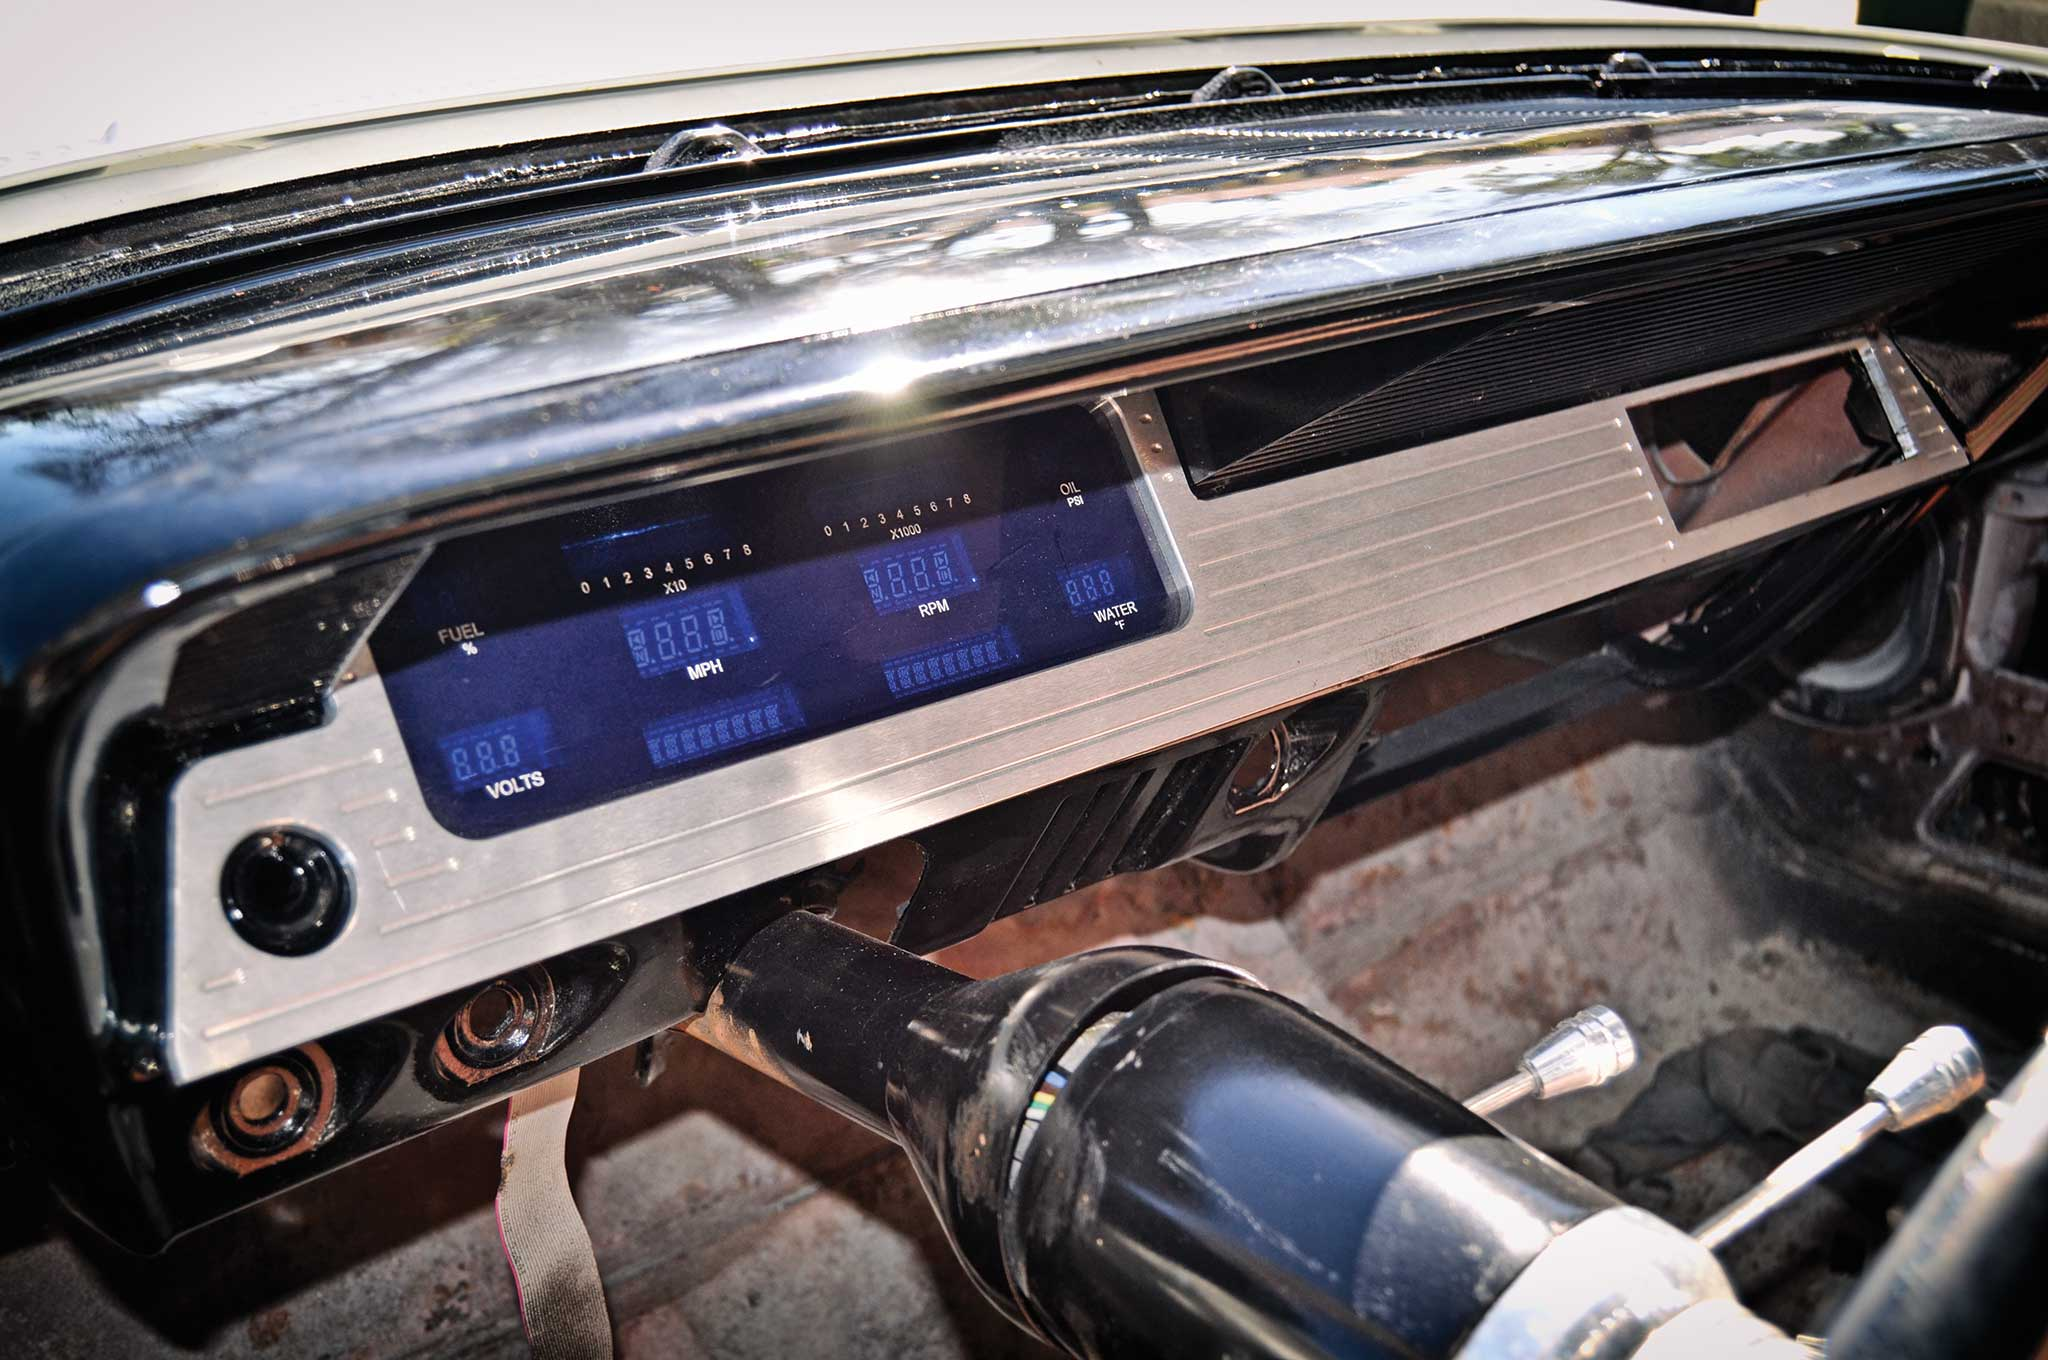 61 Impala Dakota Digital Gauge Amp Led Taillight Install